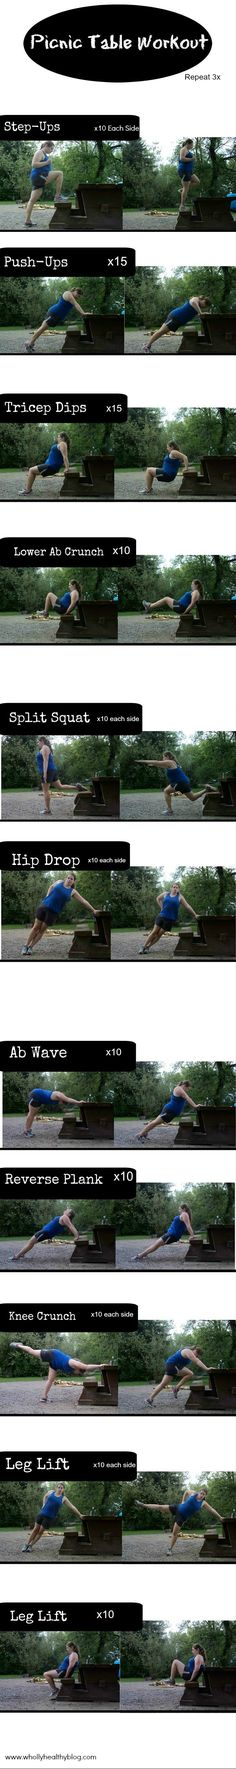 Picnic Table Workout